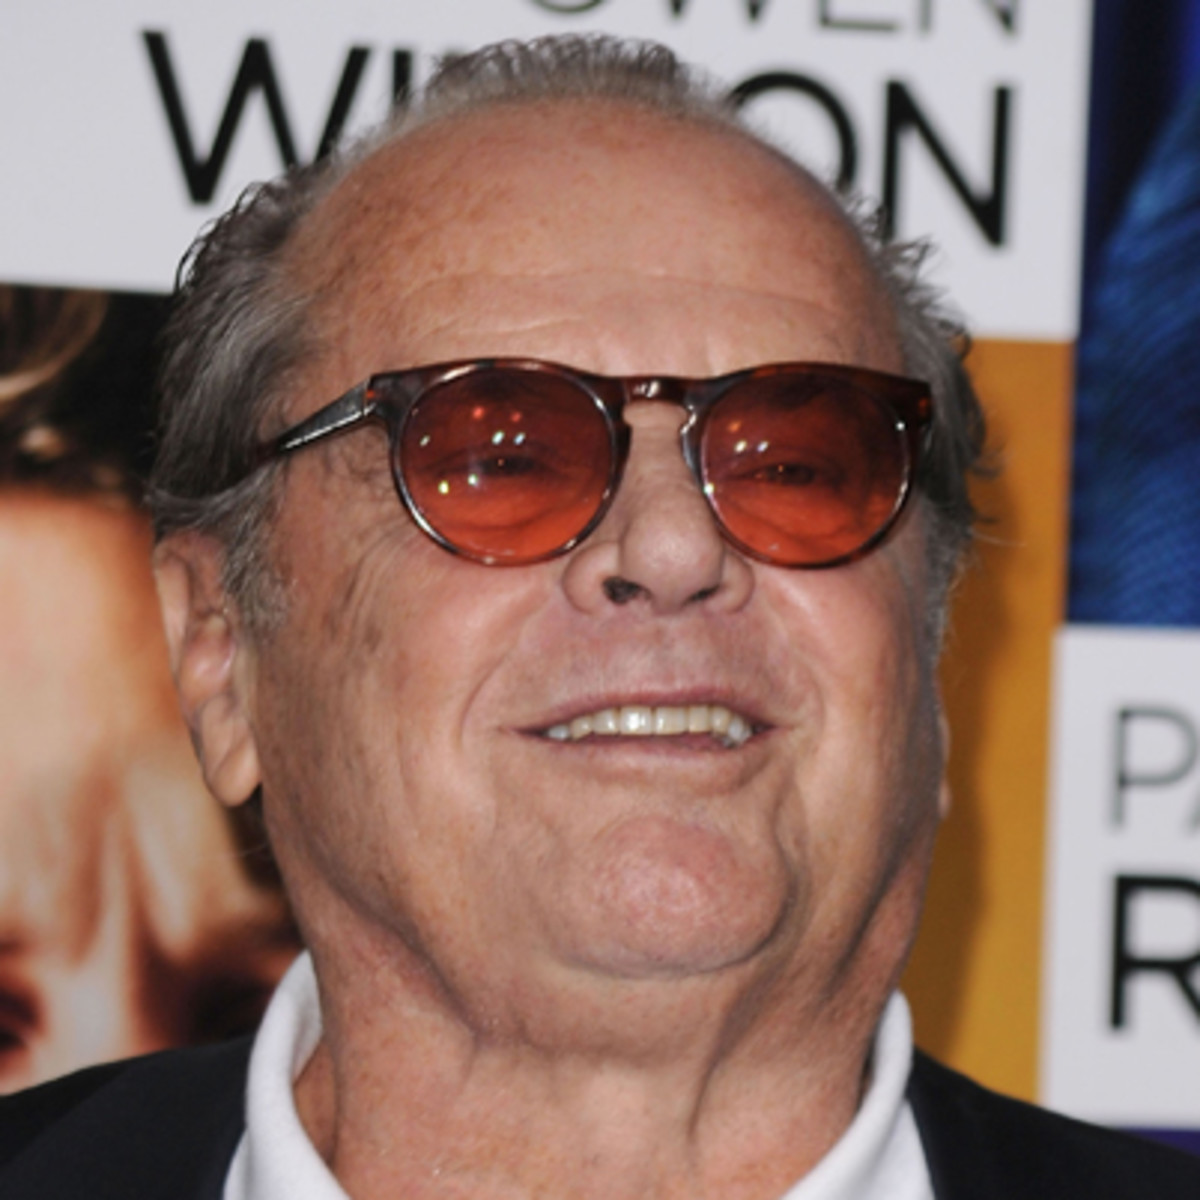 jack nicholson film actor actor com